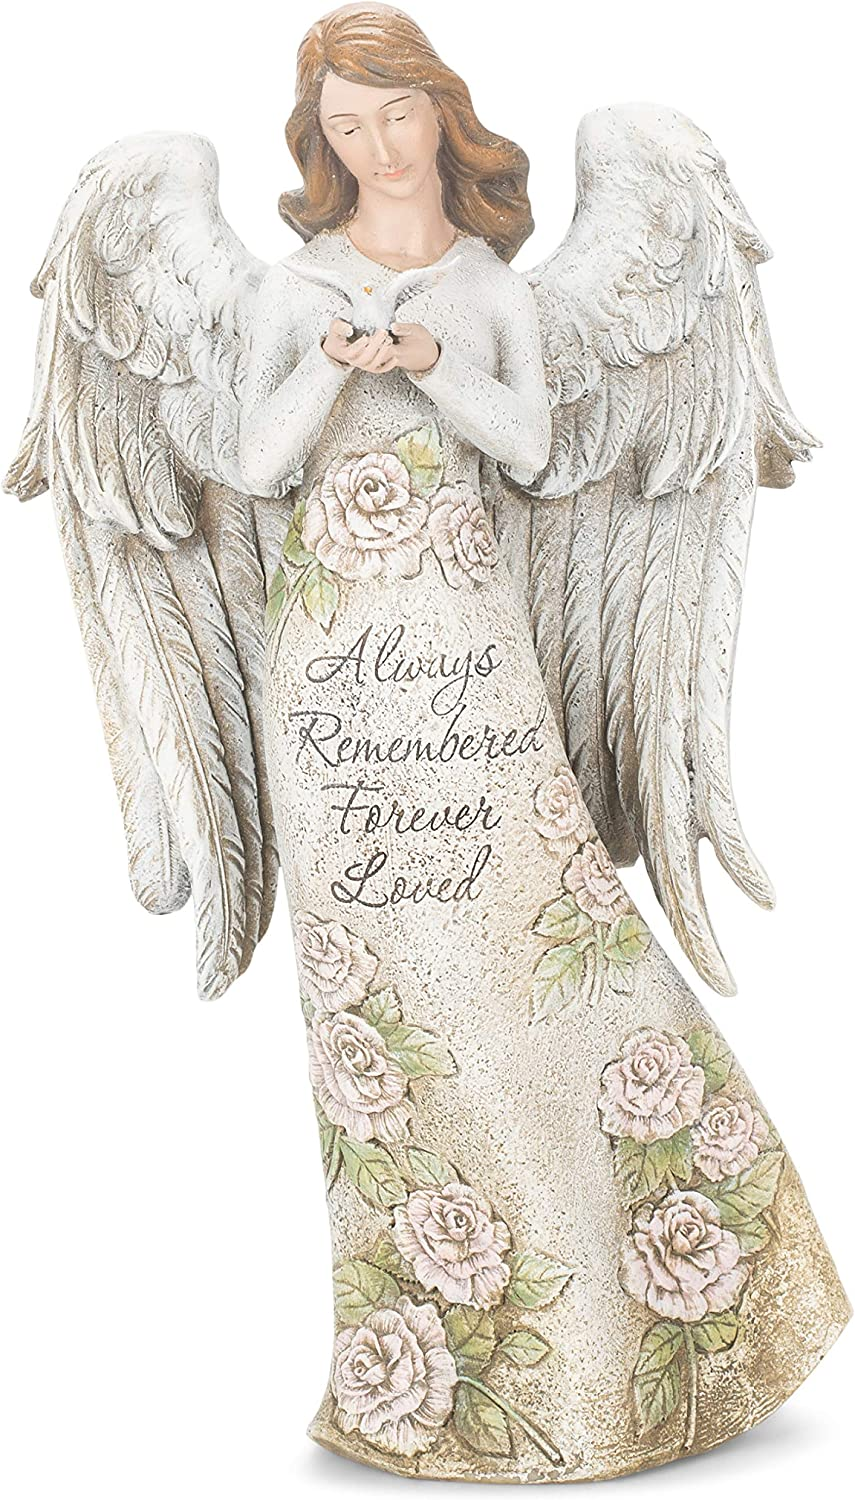 Roman 602094 Memorial Angel with Dove Statue, 13.25-inch High